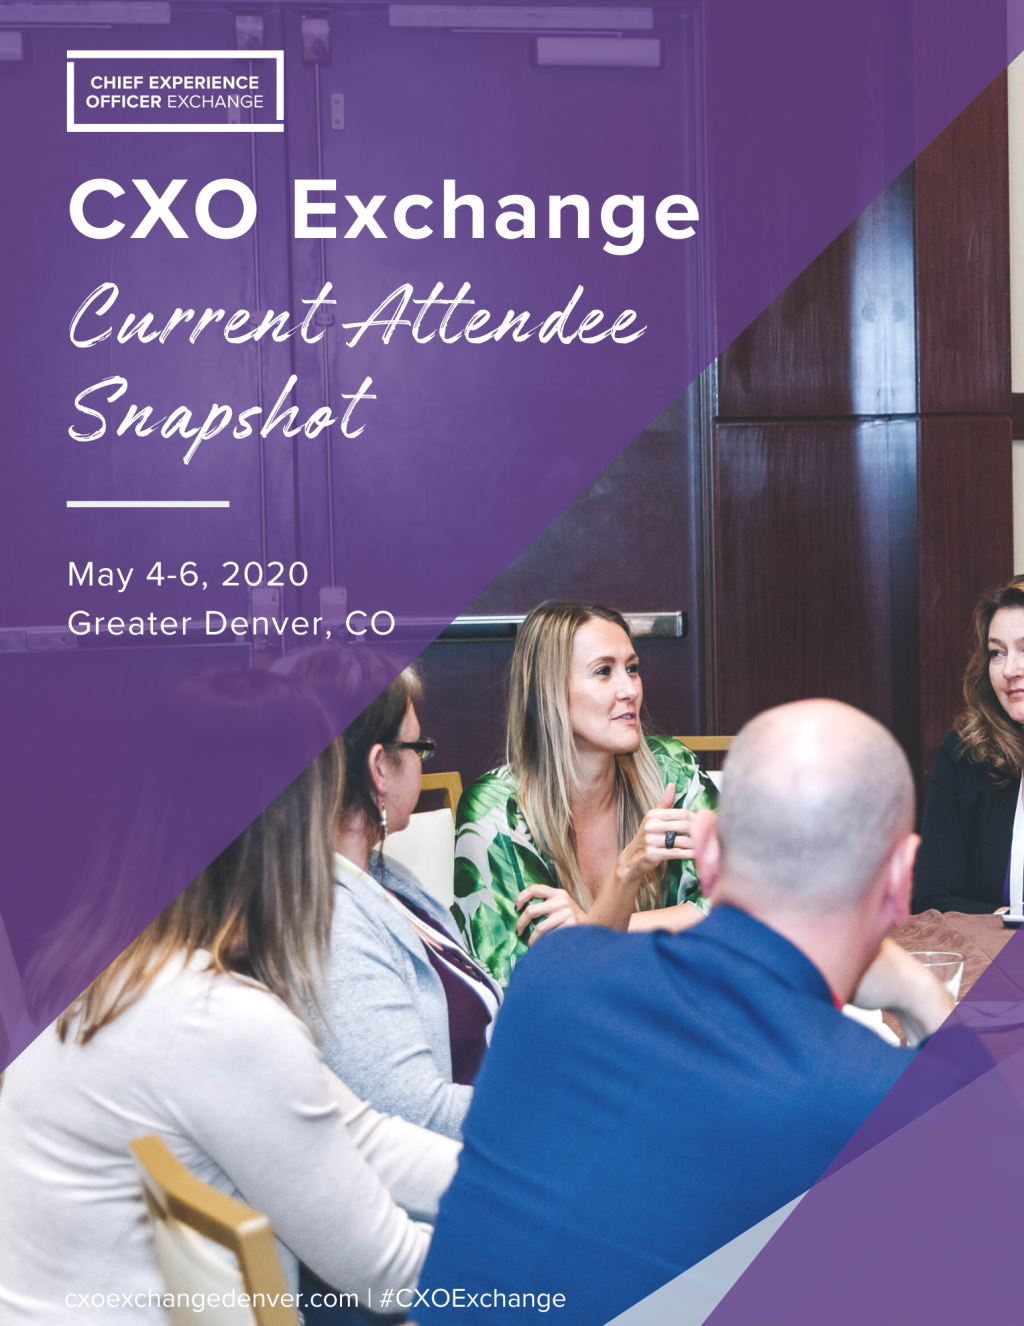 CXO Exchange Denver Current Attendee Snapshot